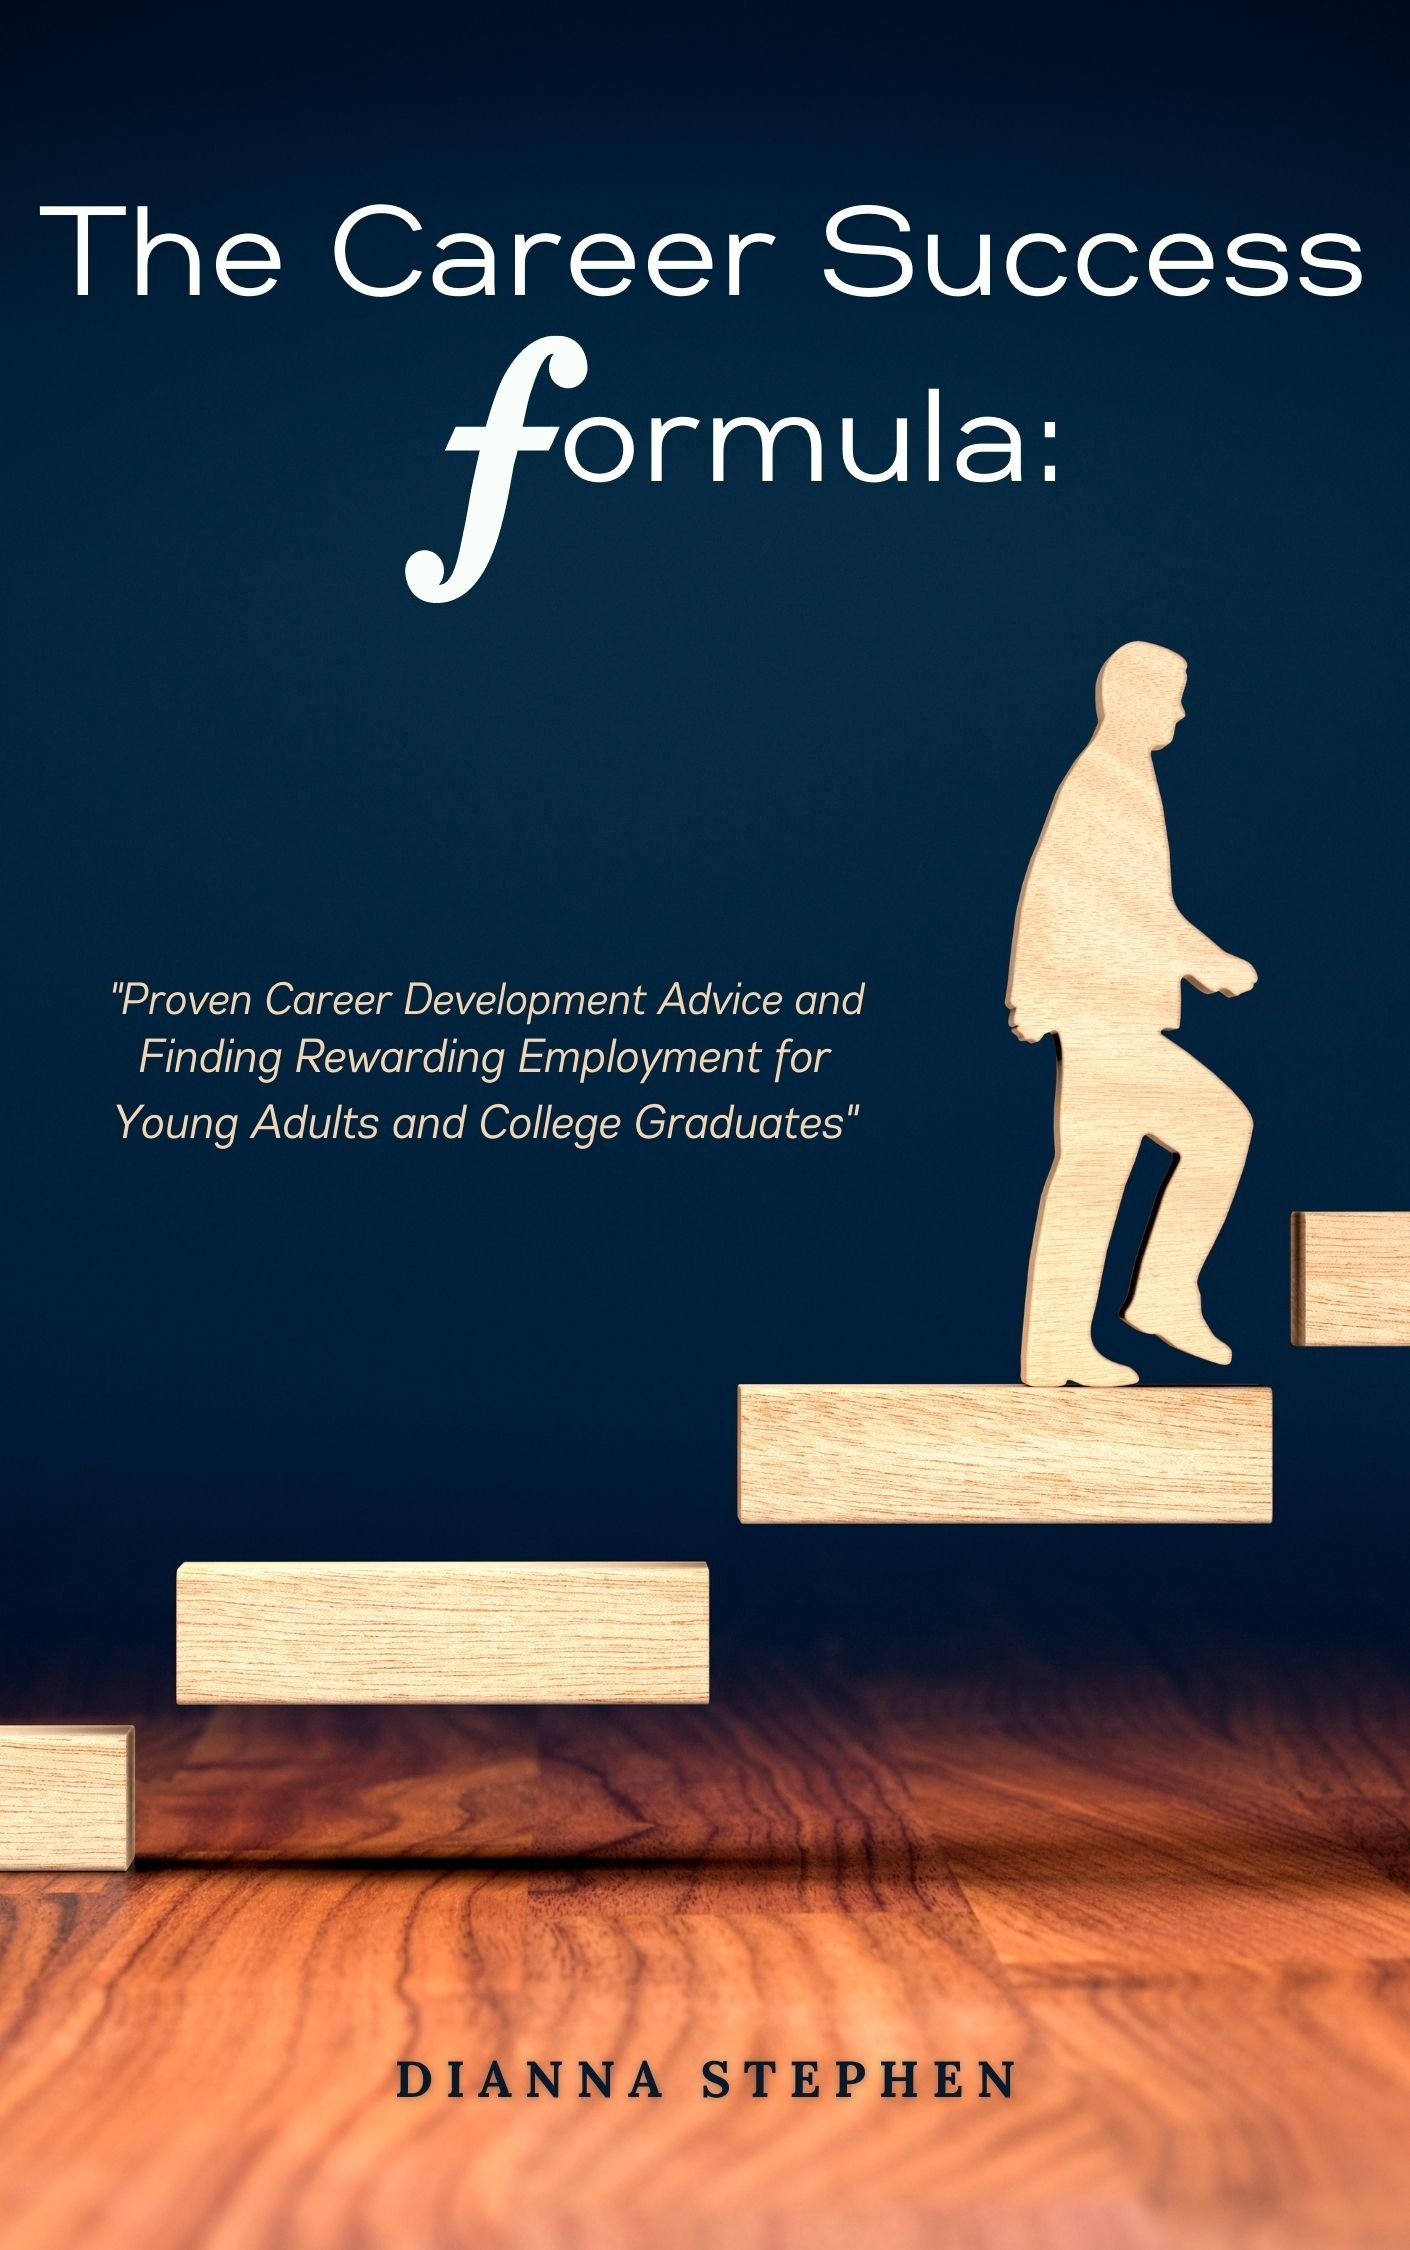 The Career Success Formula: Proven Career Development Advice and